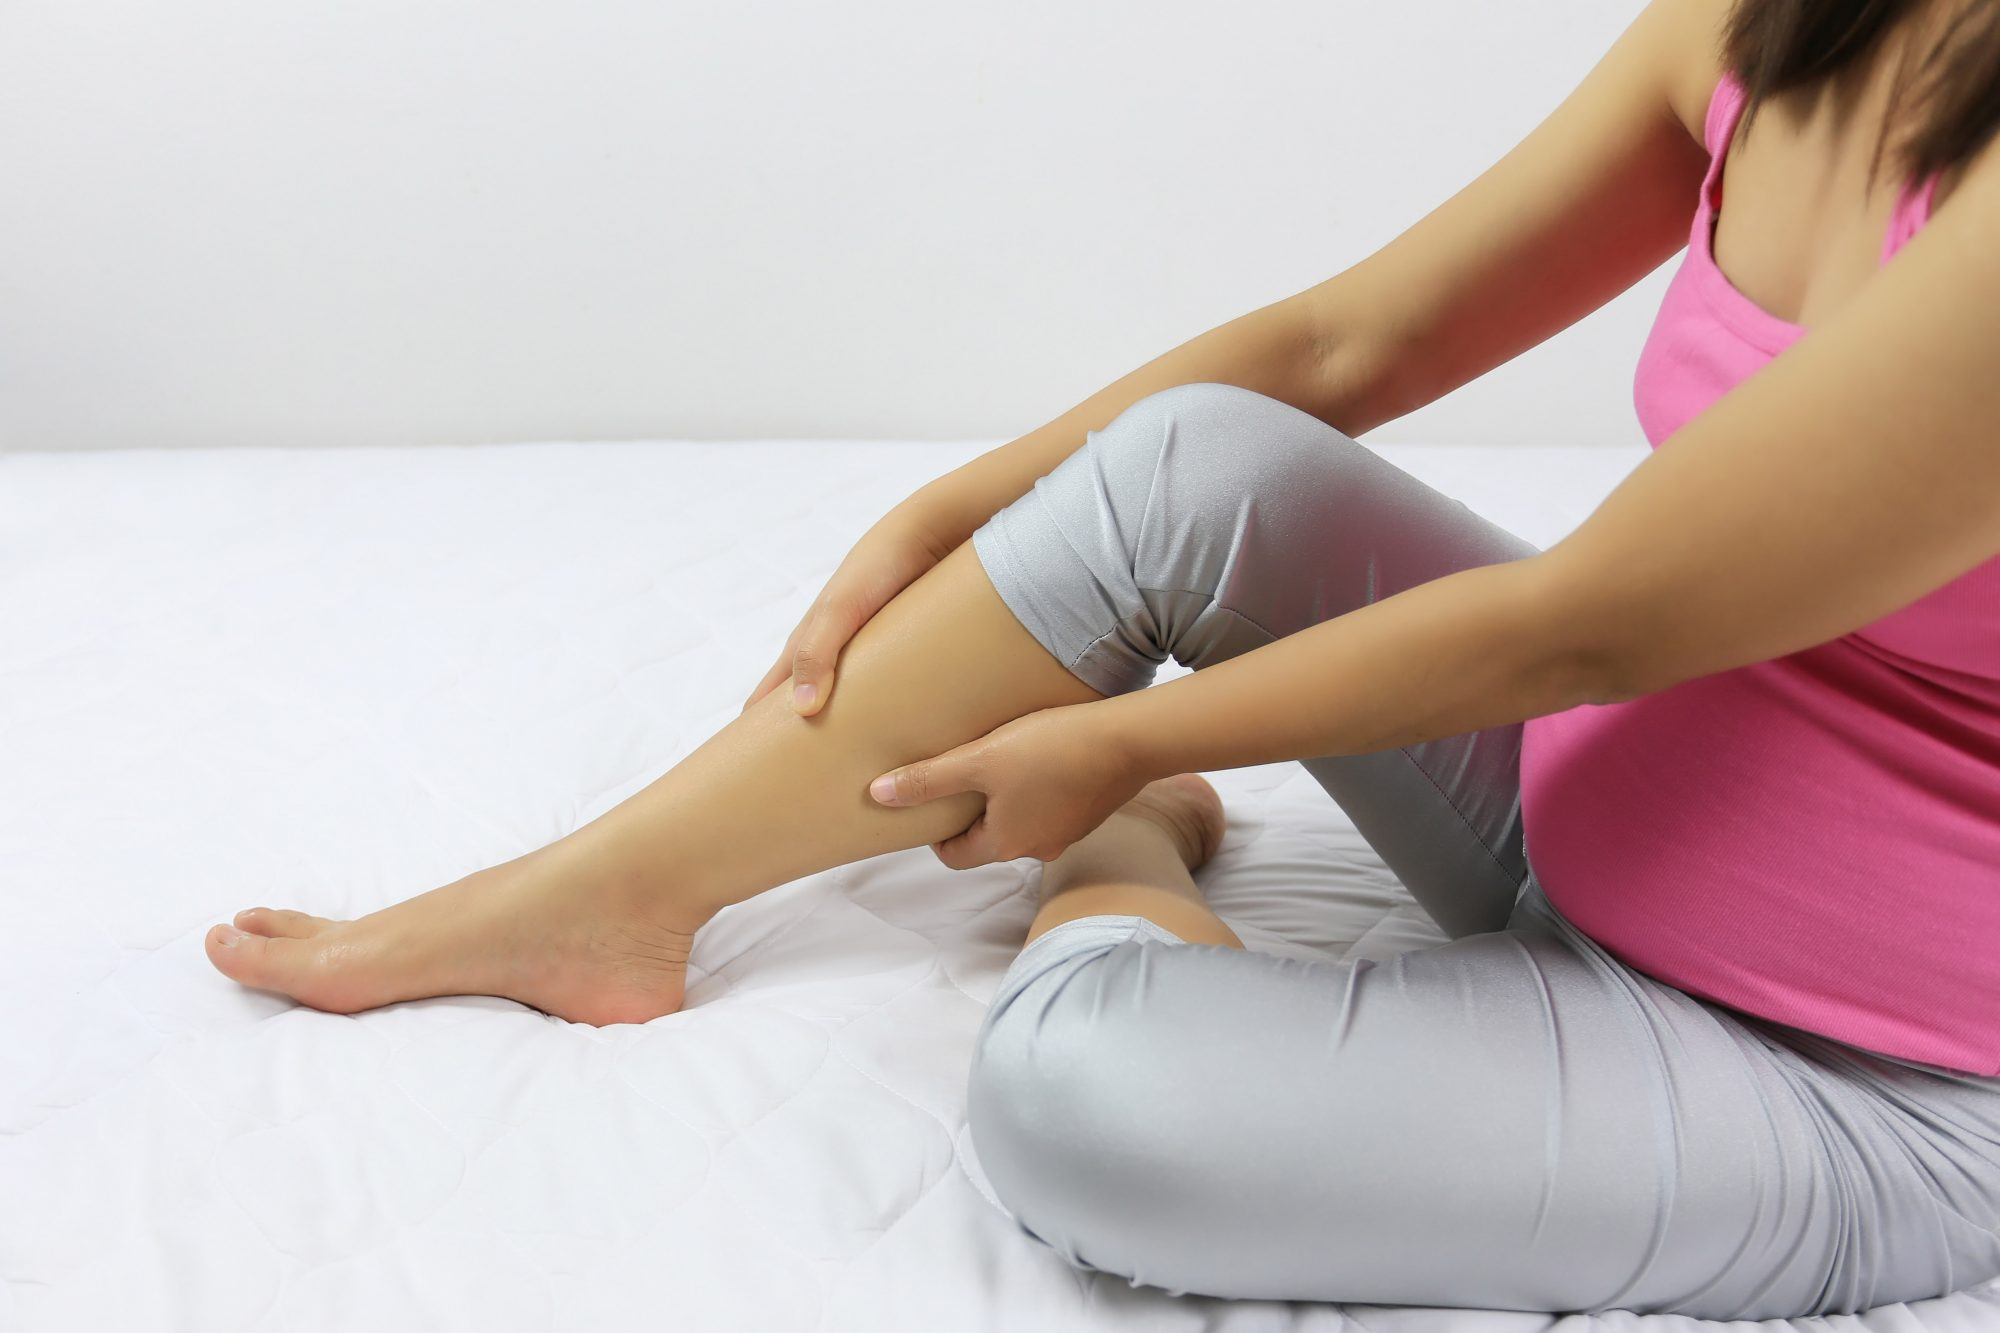 An image of a pregnant woman holding her leg.